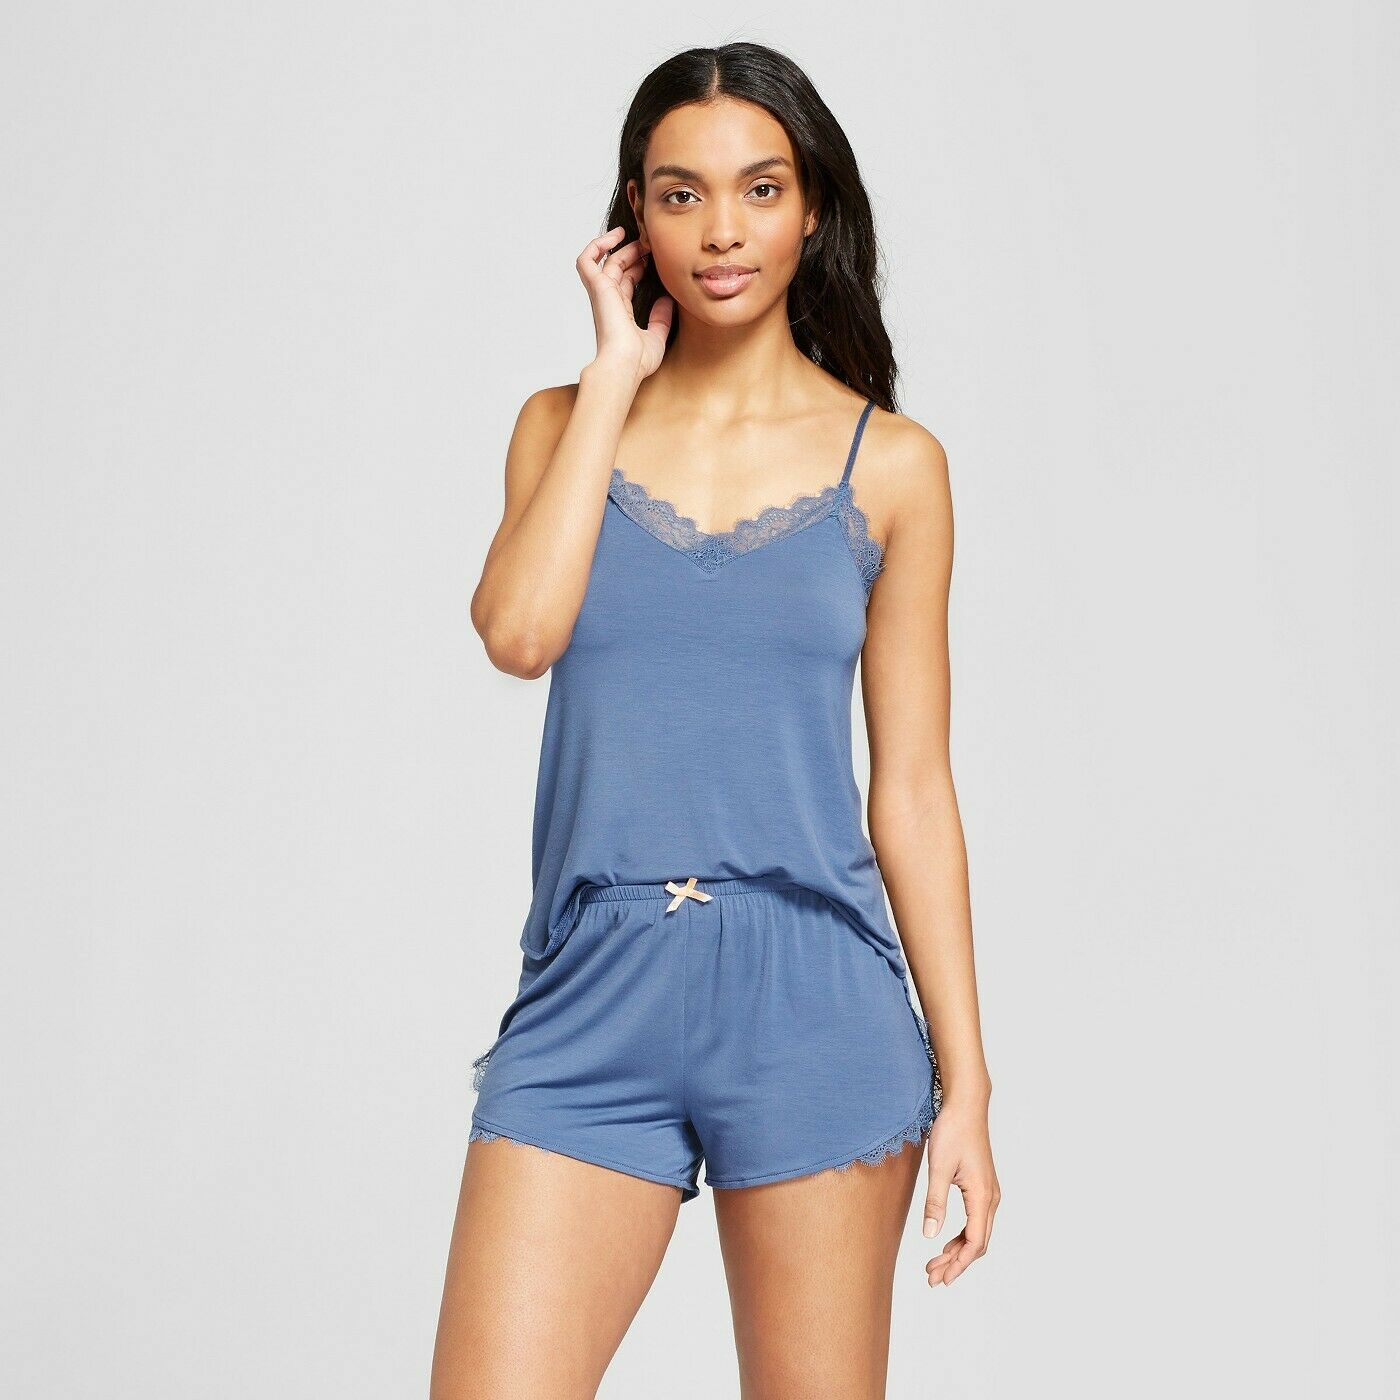 Gilligan & O'Malley Women's Total Comfort Lace Tank & Shorts Pajama Set -Blue XS Clothing, Shoes & Accessories